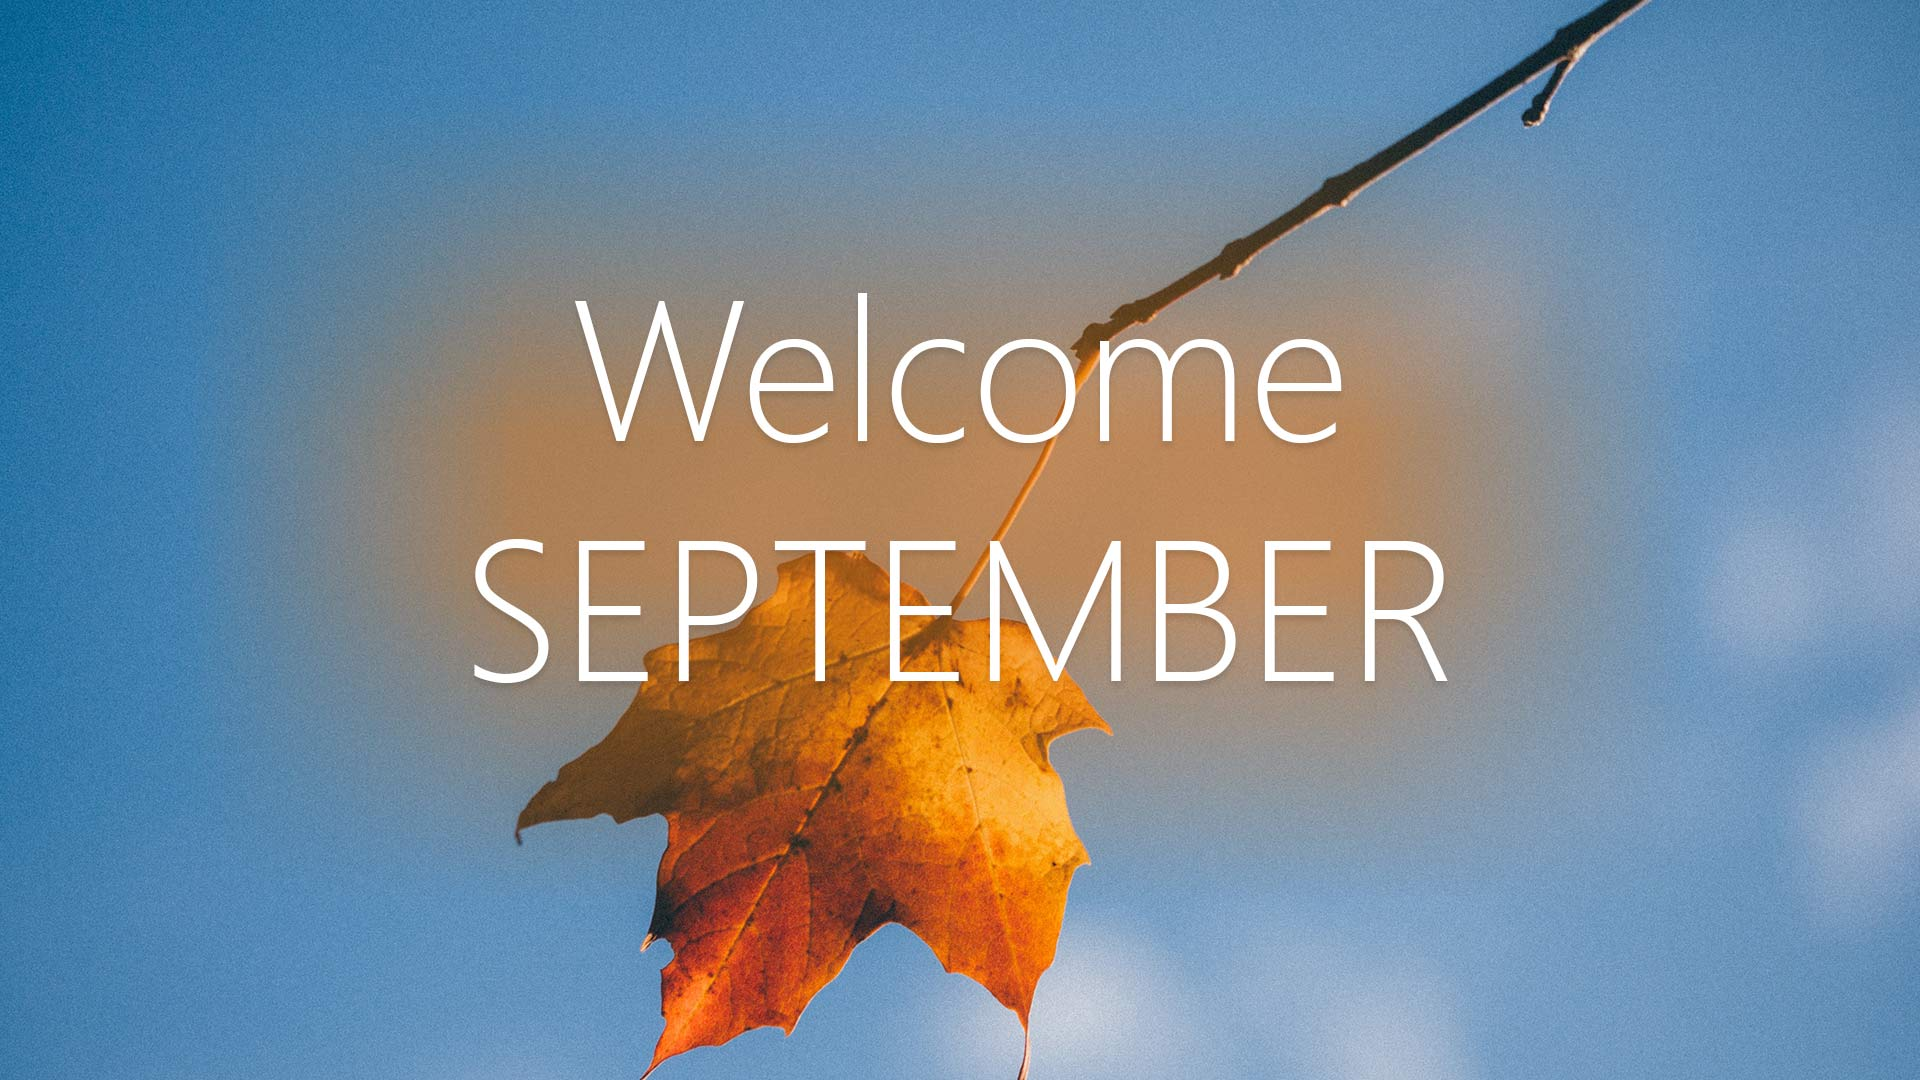 Welcome September Wallpaper Autumn